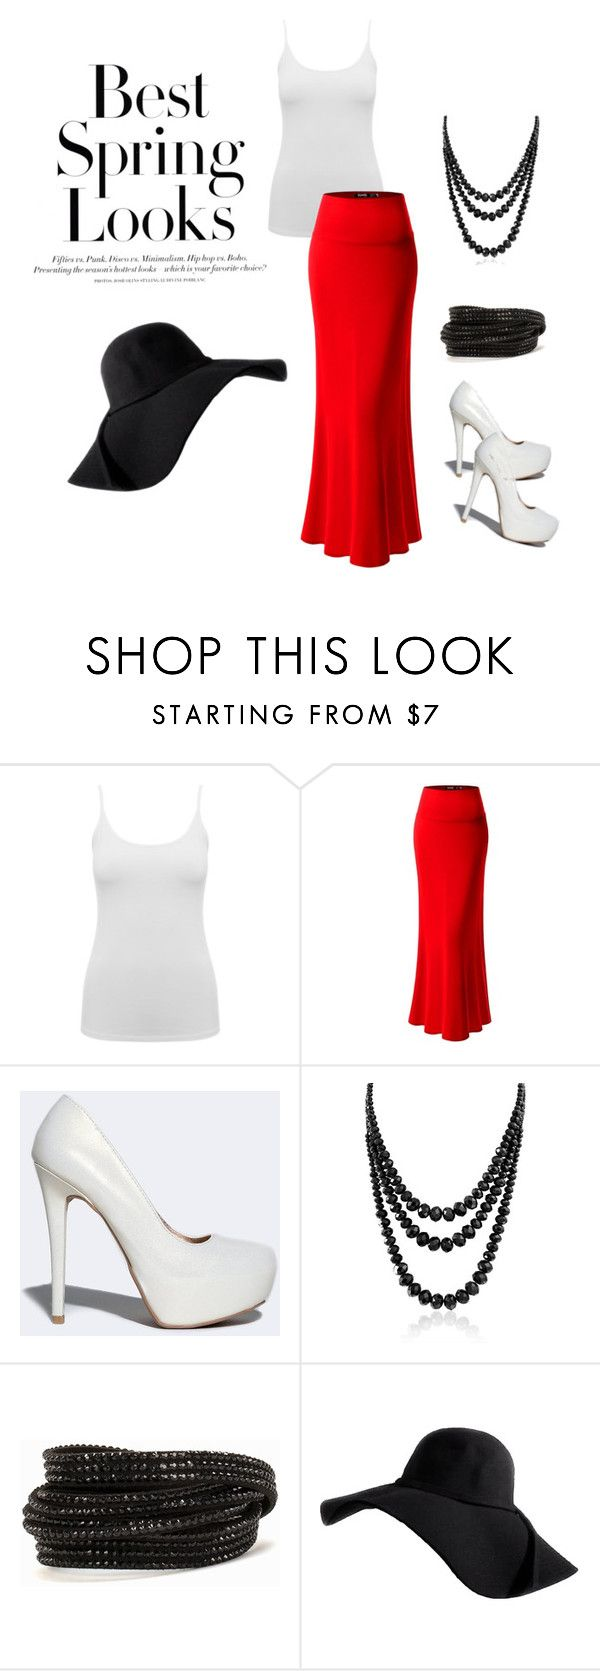 """Untitled #32"" by reetta-v on Polyvore featuring H&M, M&Co, Qupid, Bling Jewelry and Pieces"